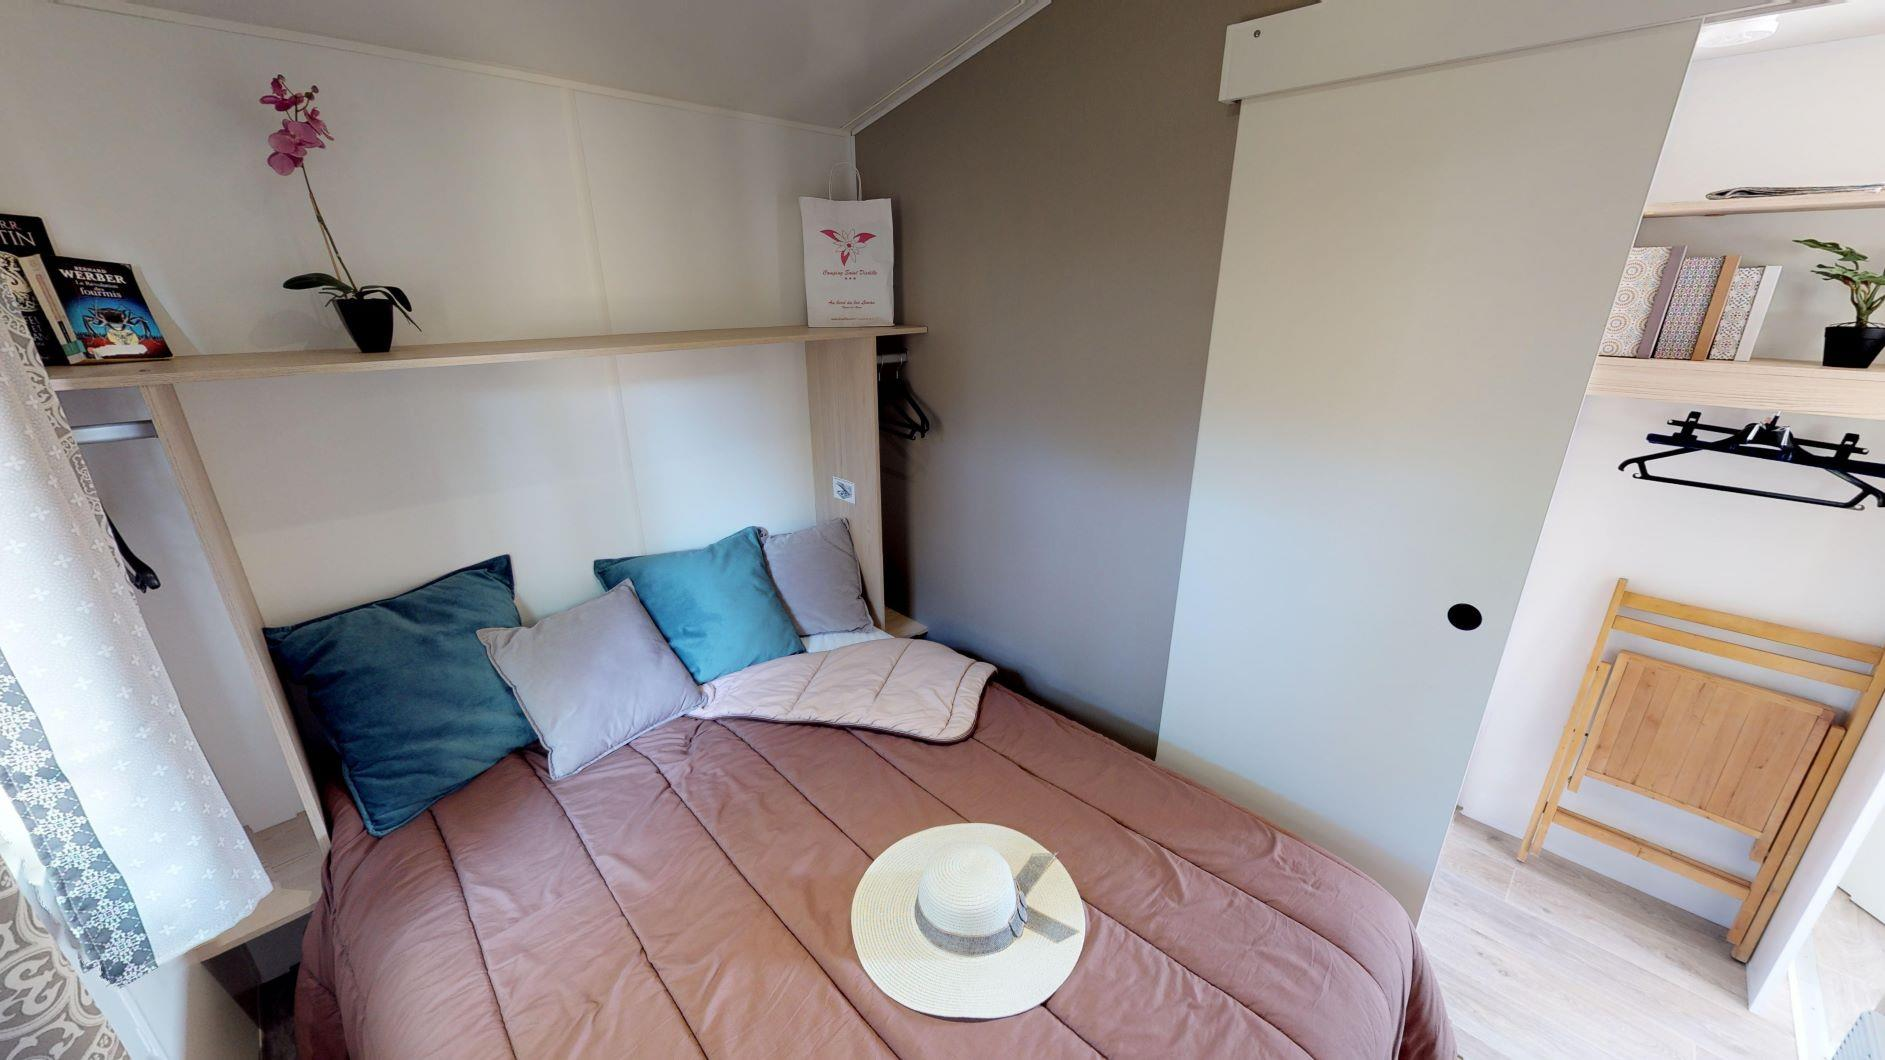 Accommodation - Tithome (2 Bedrooms) - Toilet Andkitchen Sink With Cold Water - Camping Saint Disdille